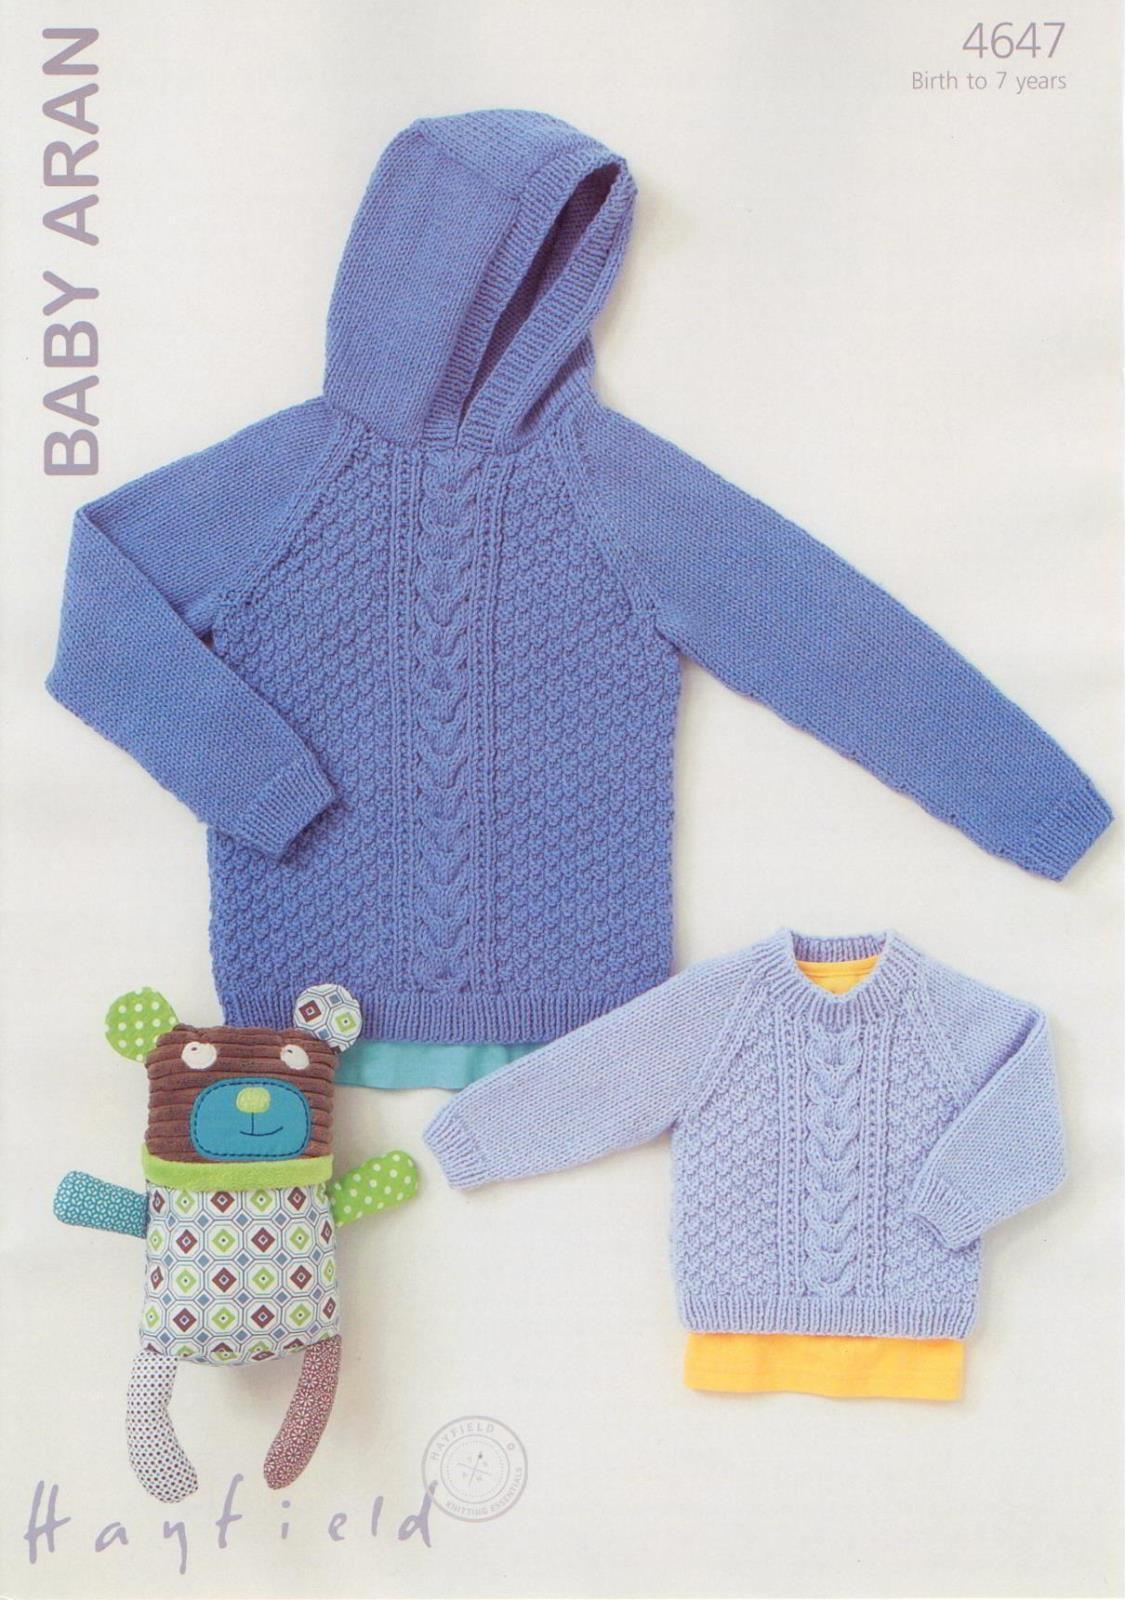 4647 - HAYFIELD BABY ARAN ROUND NECK & HOODED SWEATER KNITTING ...